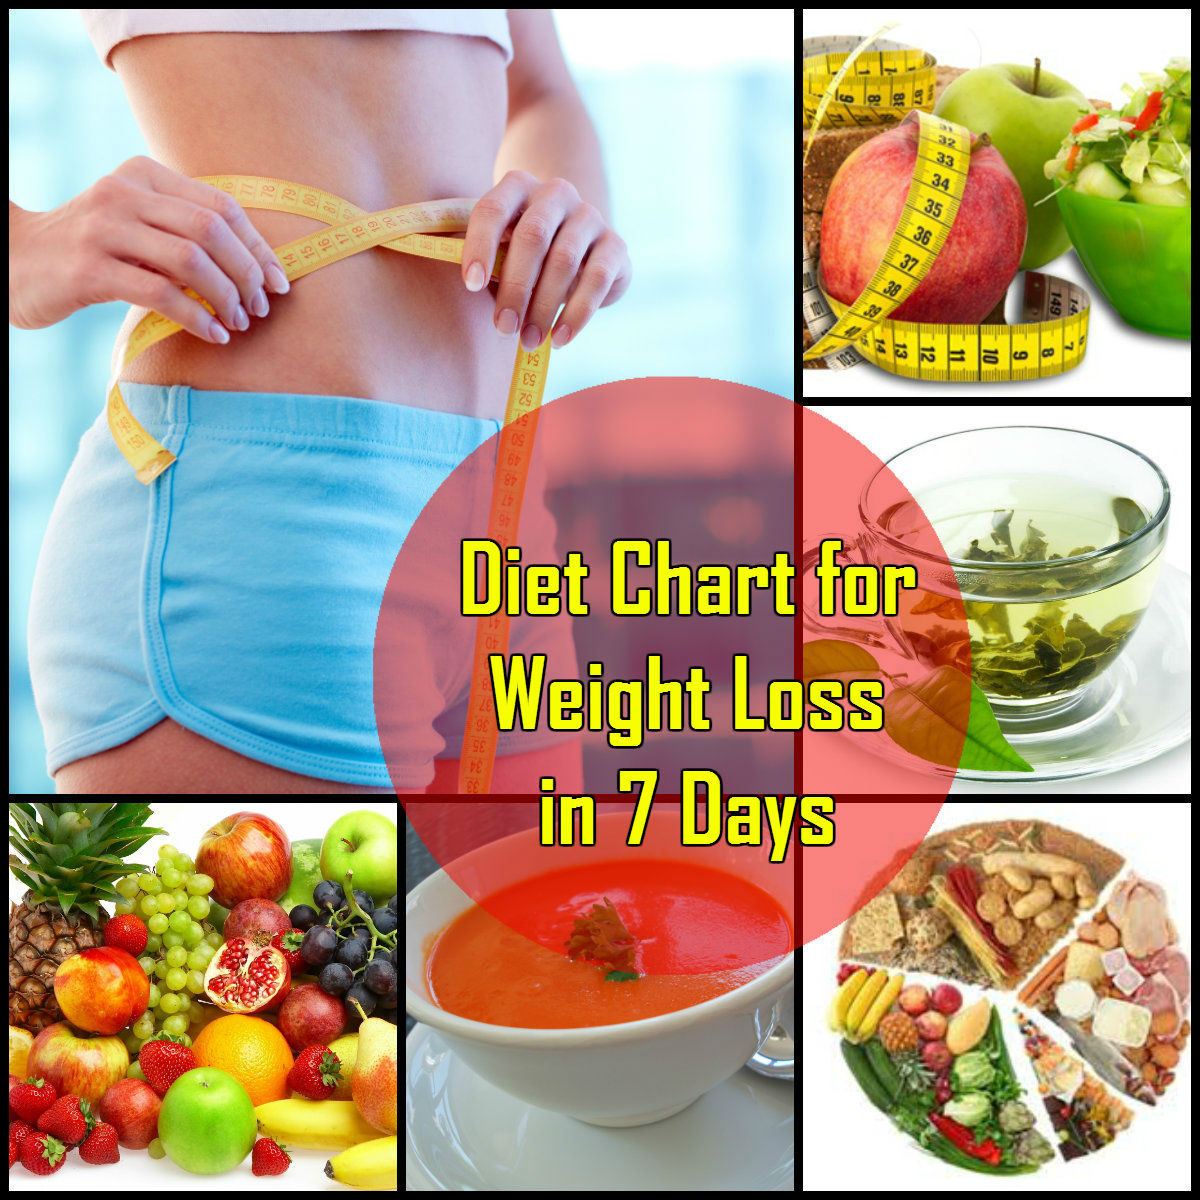 Diet Chart for Weight Loss in Hindi: Vajan Kam Kare